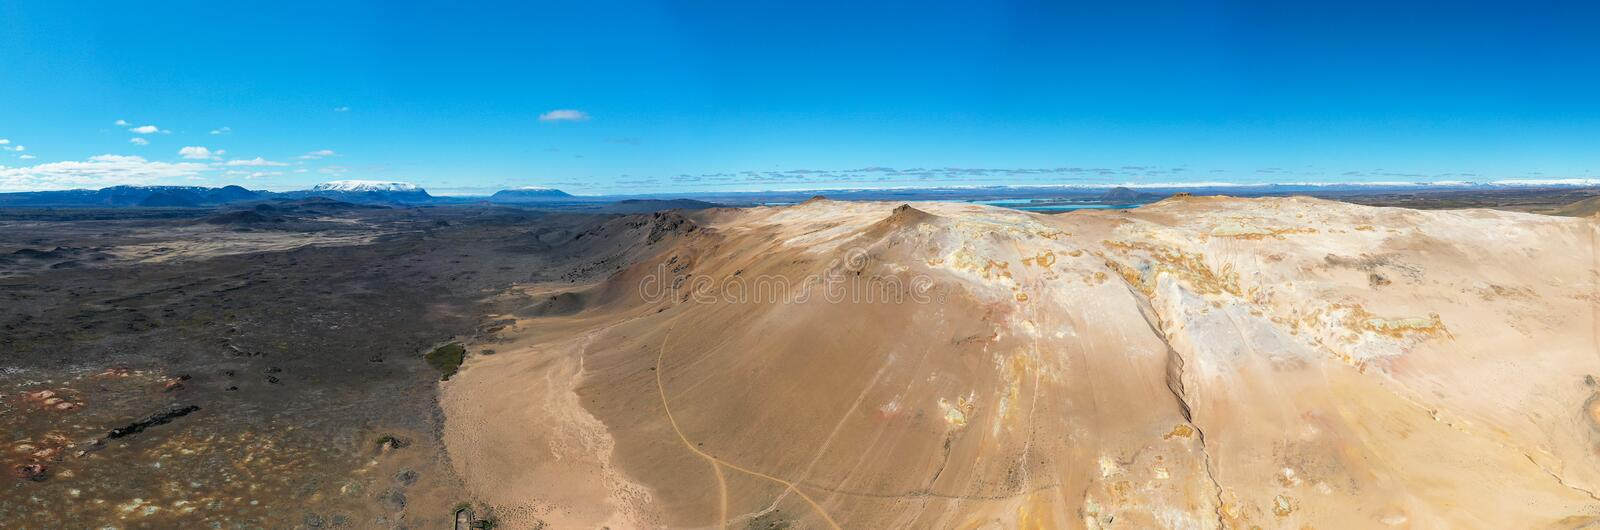 Namafjall Hverir geothermal area in Iceland. Stunning landscape of sulfur valley, panoramic view of Namafjall mountain and blue. Cloudy sky, travel background royalty free stock images